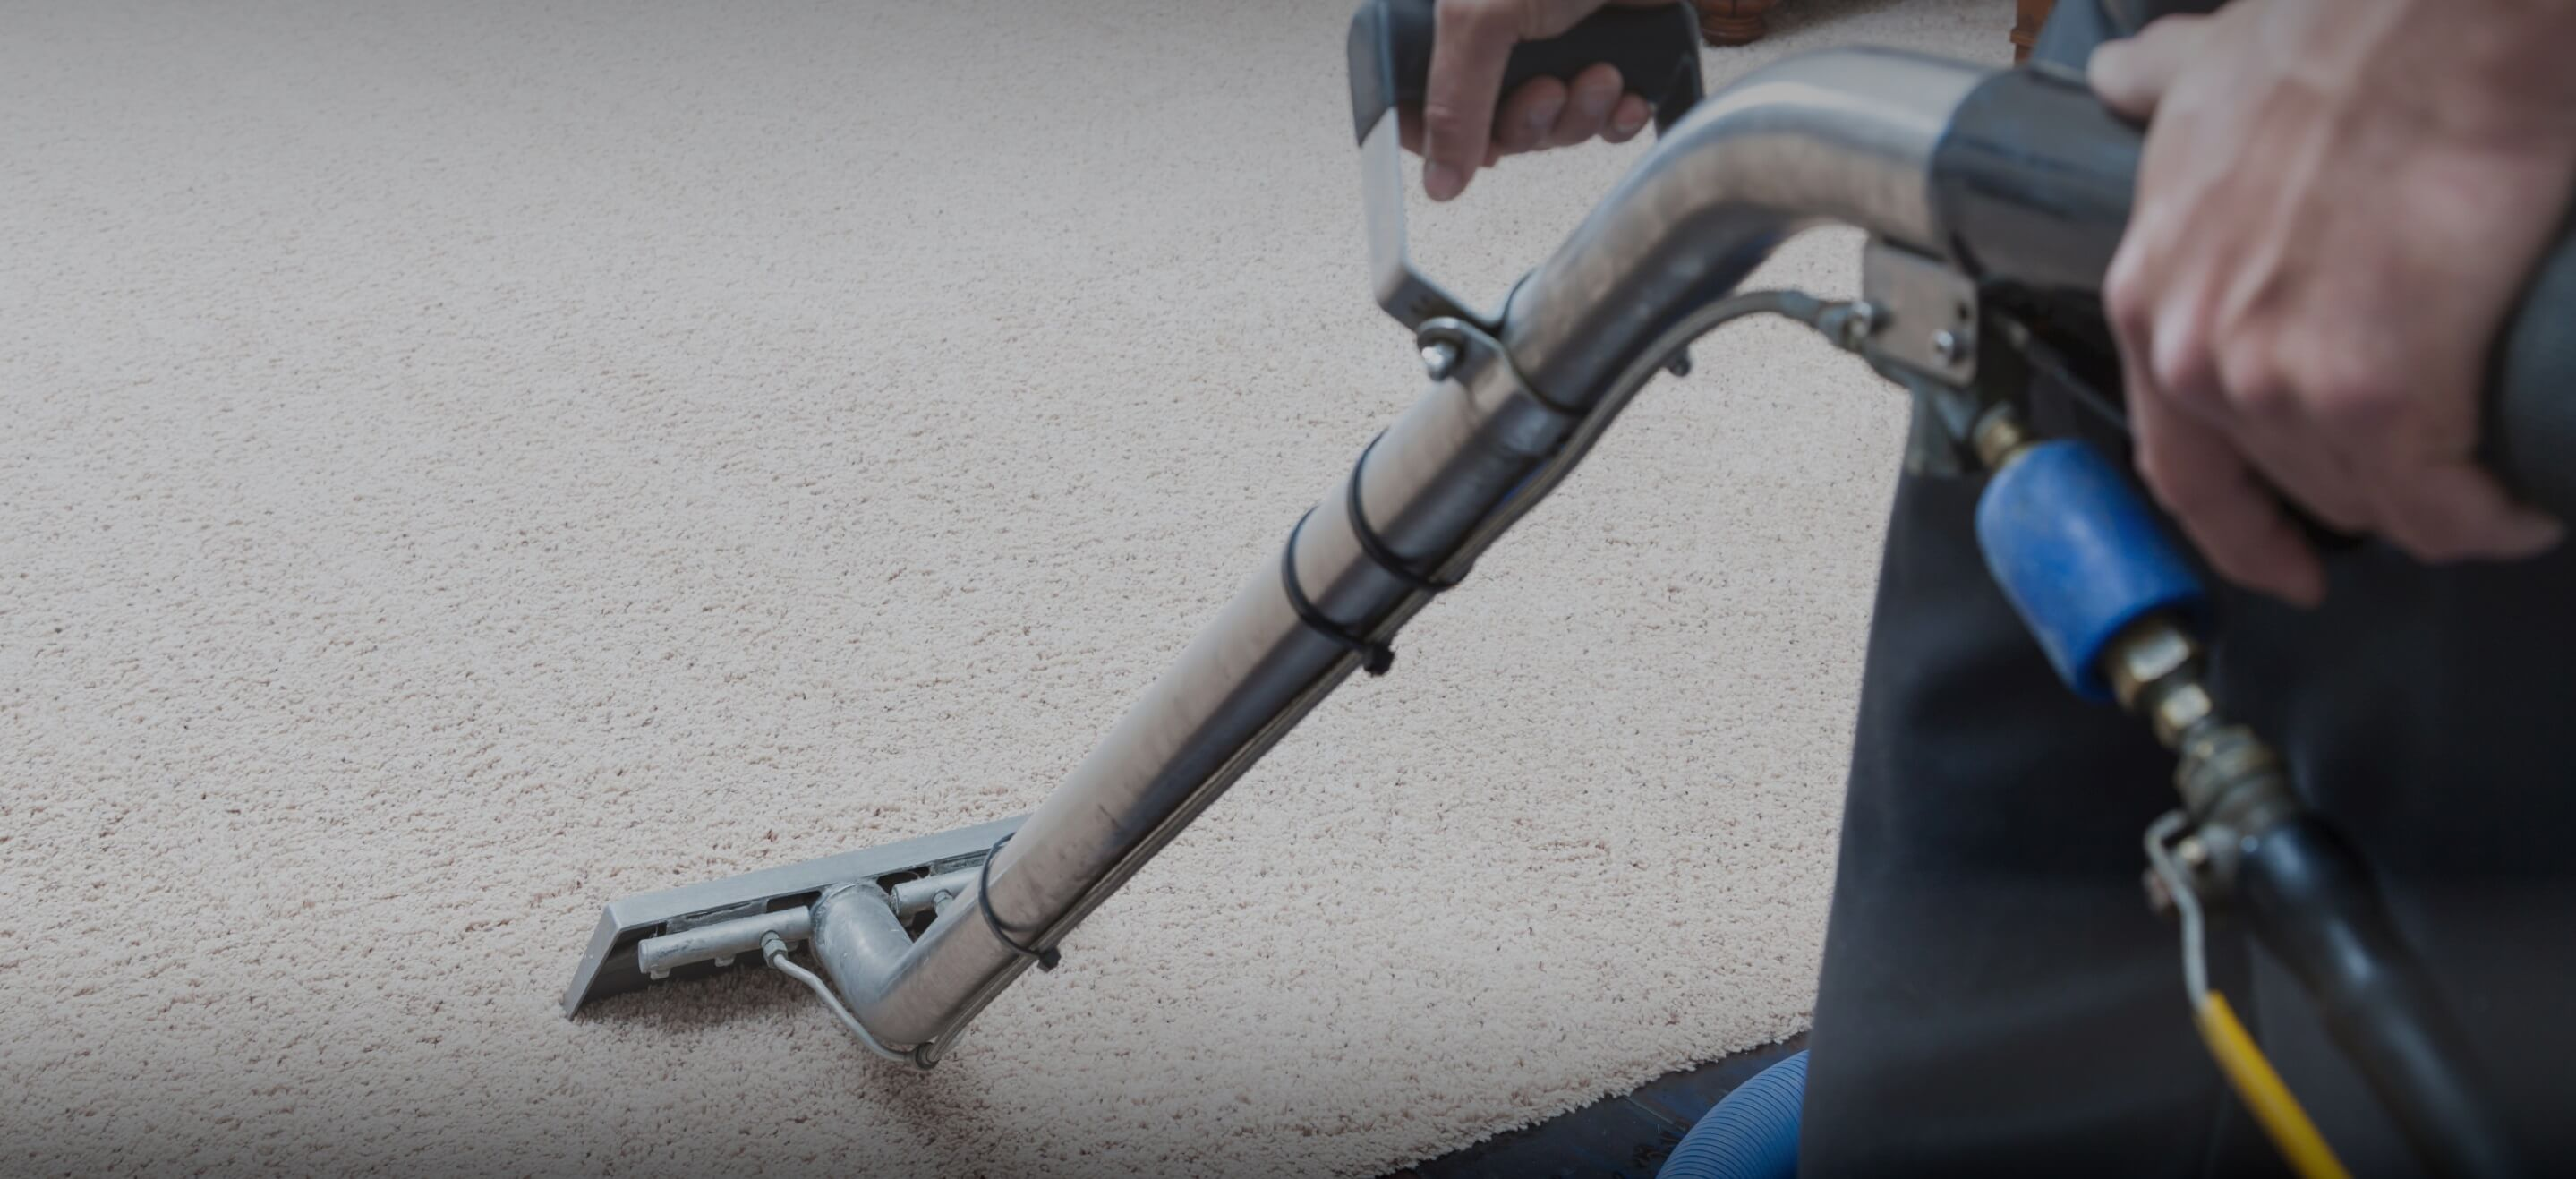 carpet cleaning in mesa upholstery cleaning rug cleaning complete carpet cleaning mesa az